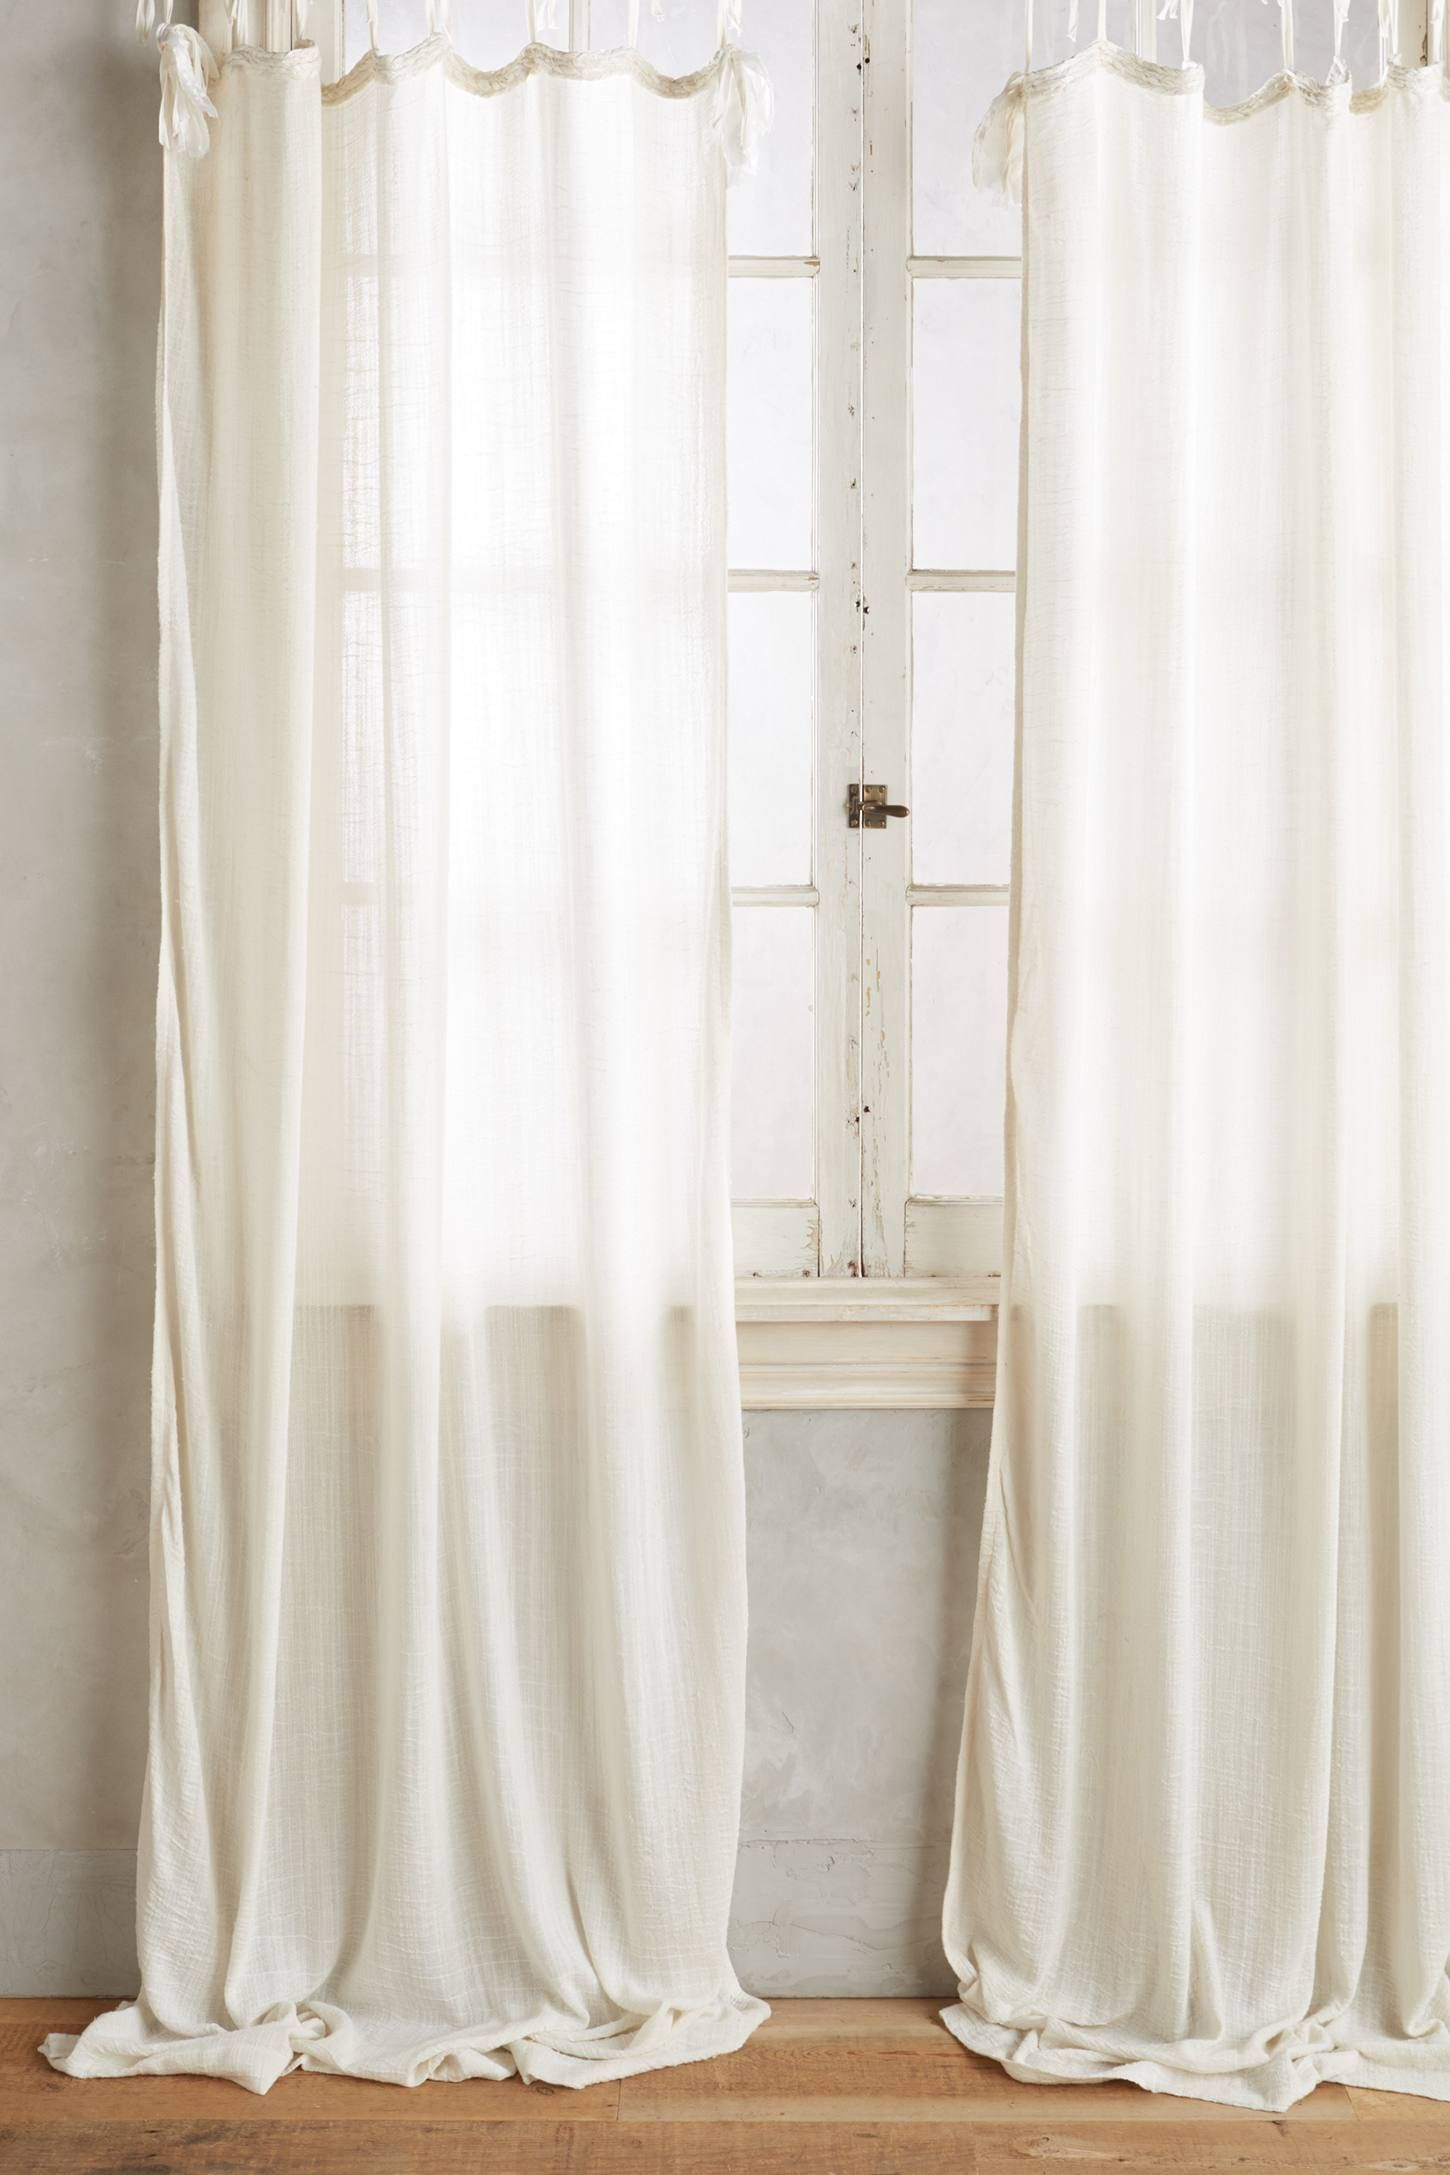 How To Choose The Right Window Treatment Drapes Vs Curtains